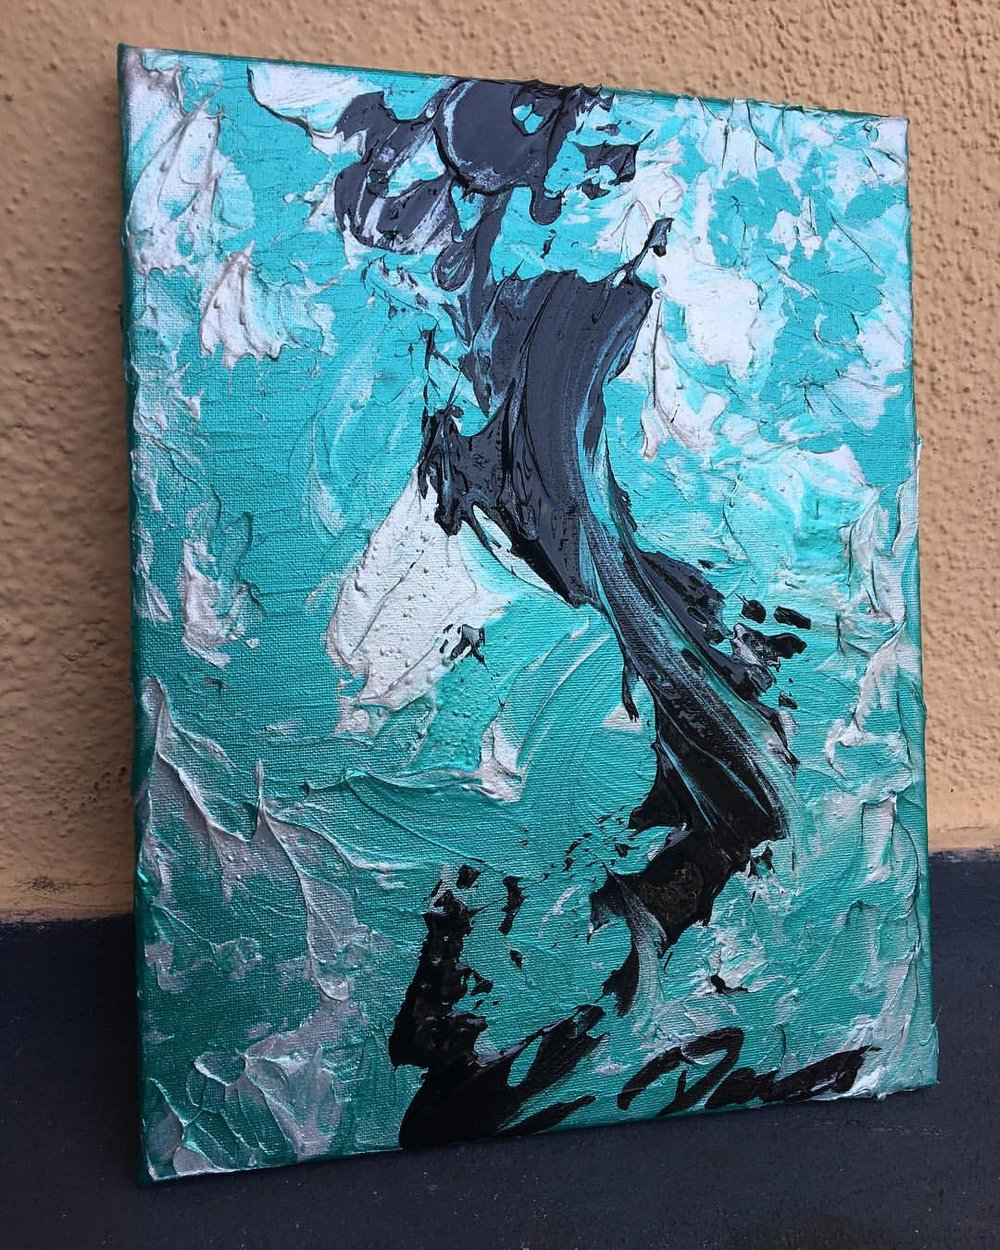 Teal in Ice 2017 - SOLD